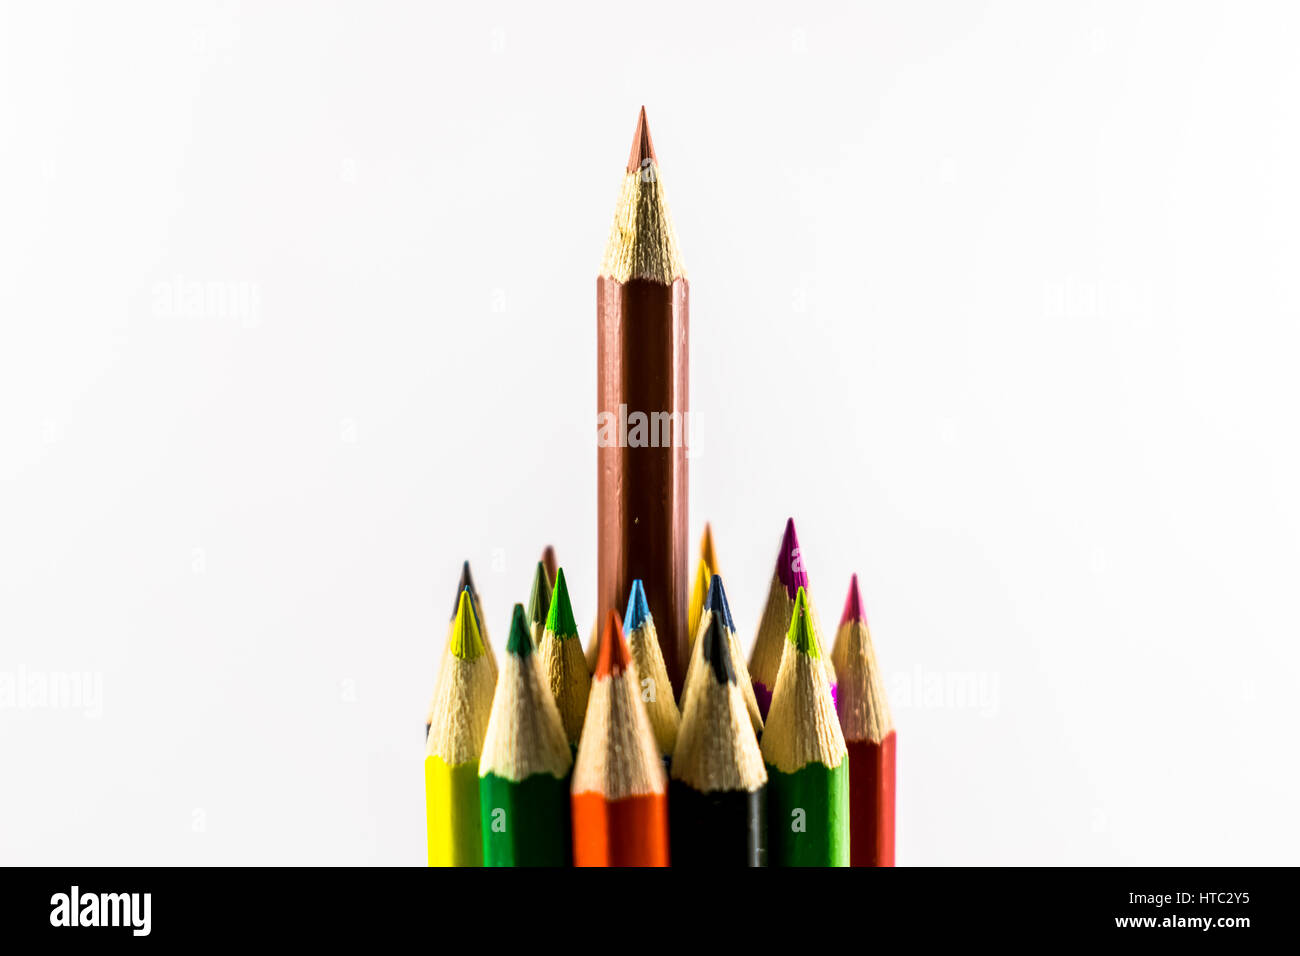 Colored pencils - Stock Image